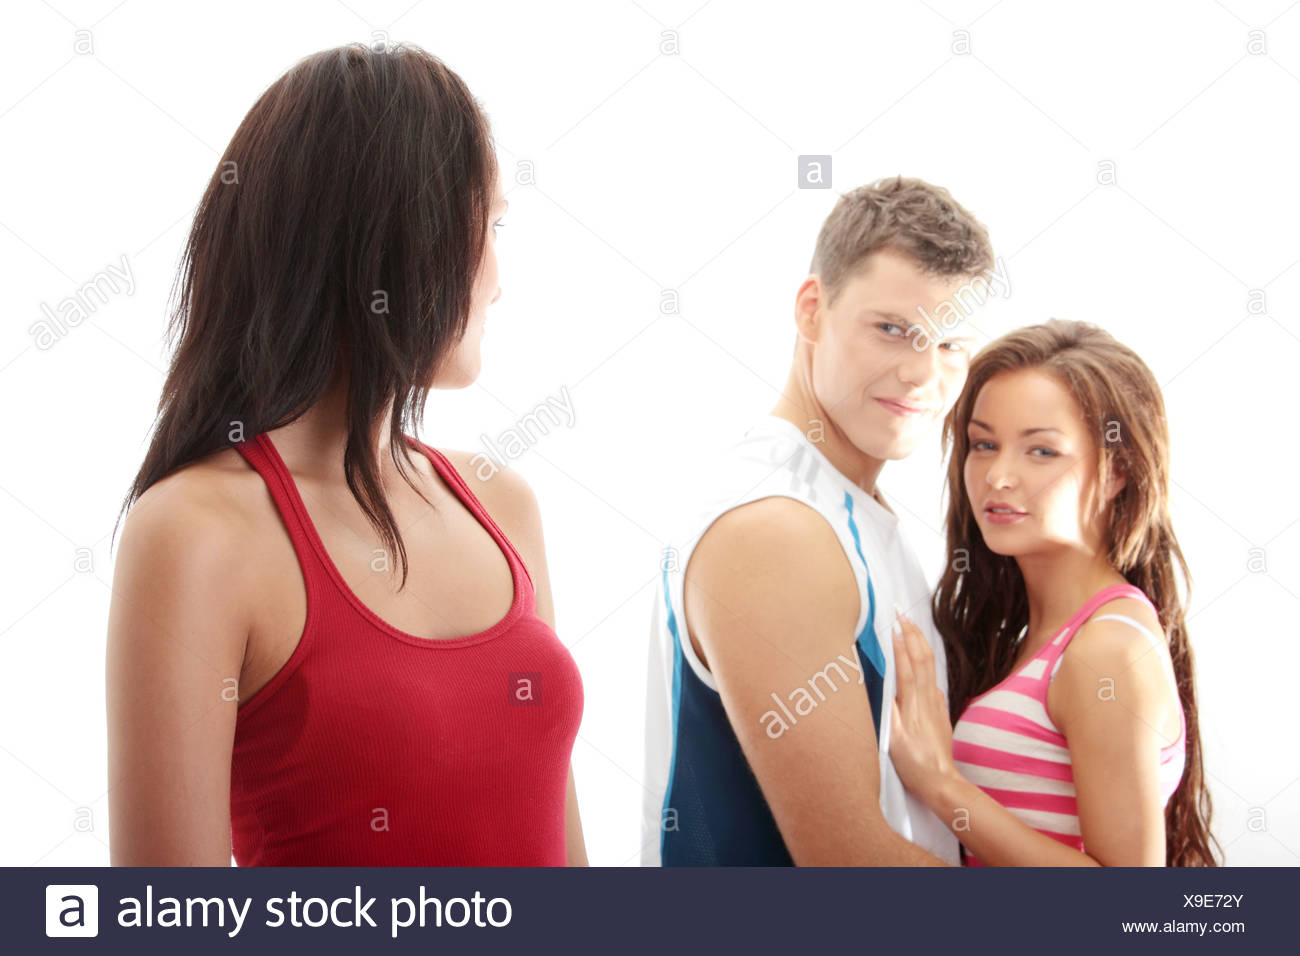 flirting signs for girls images pictures without background